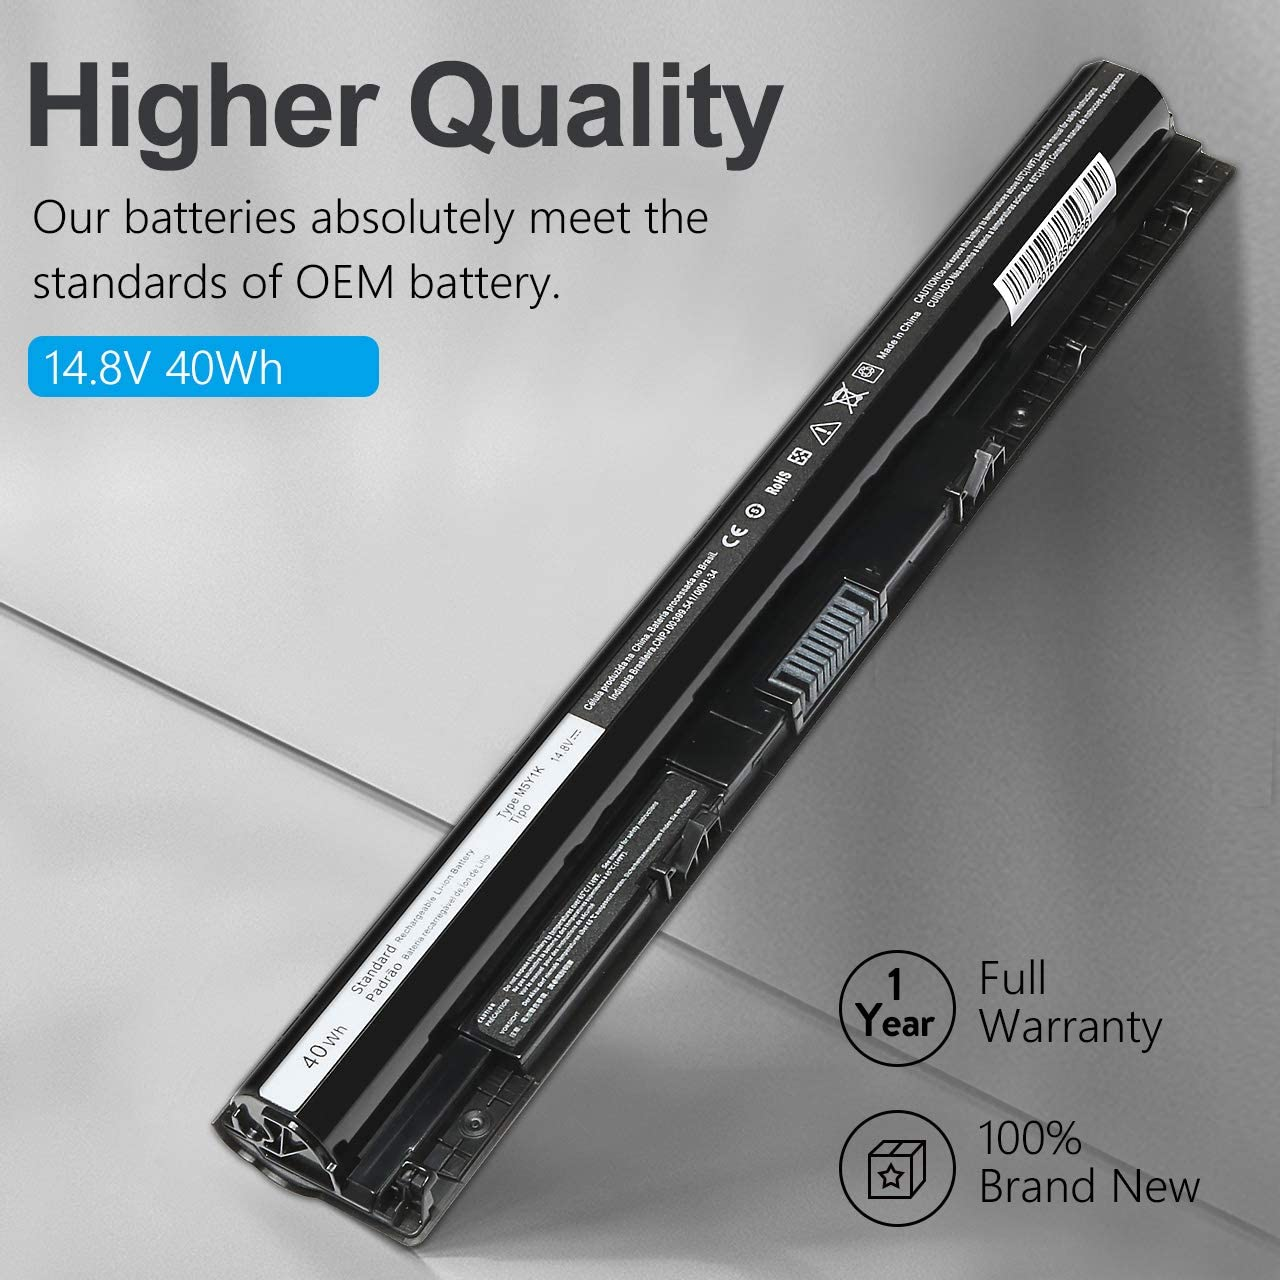 New M5Y1K Laptop Battery for dell Inspiron 3451 3551 3567 5551 5555 5558 5559 5758 Vostro 3458 3558 3468 Inspiron 14 15 3000 Series Fit K185W WKRJ2 VN3N0